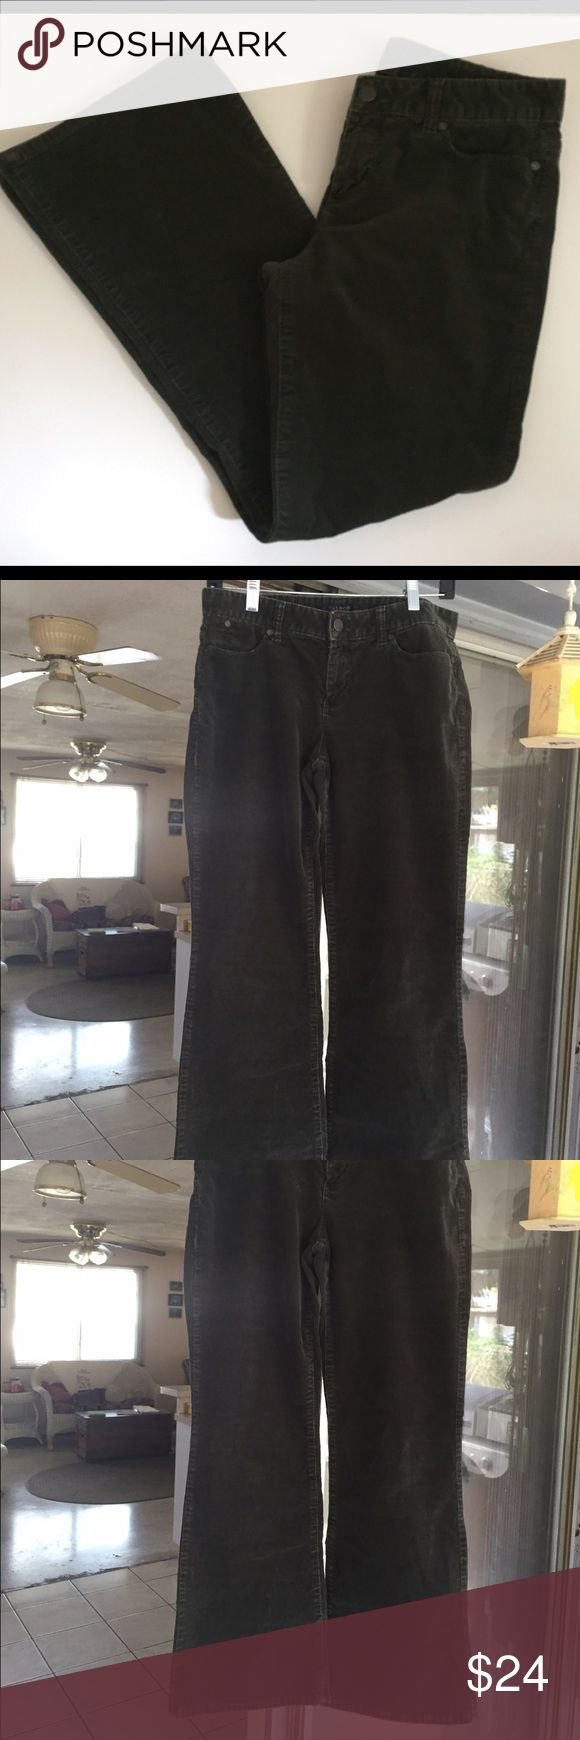 Talbots – forest green boot cut corduroys Forest green corduroys by Talbots, boot cut, size 6, 27 inch inseam, 15 inches across the waist, 17 inches across the hips. Excellent condition. Talbots Pants Boot Cut & Flare